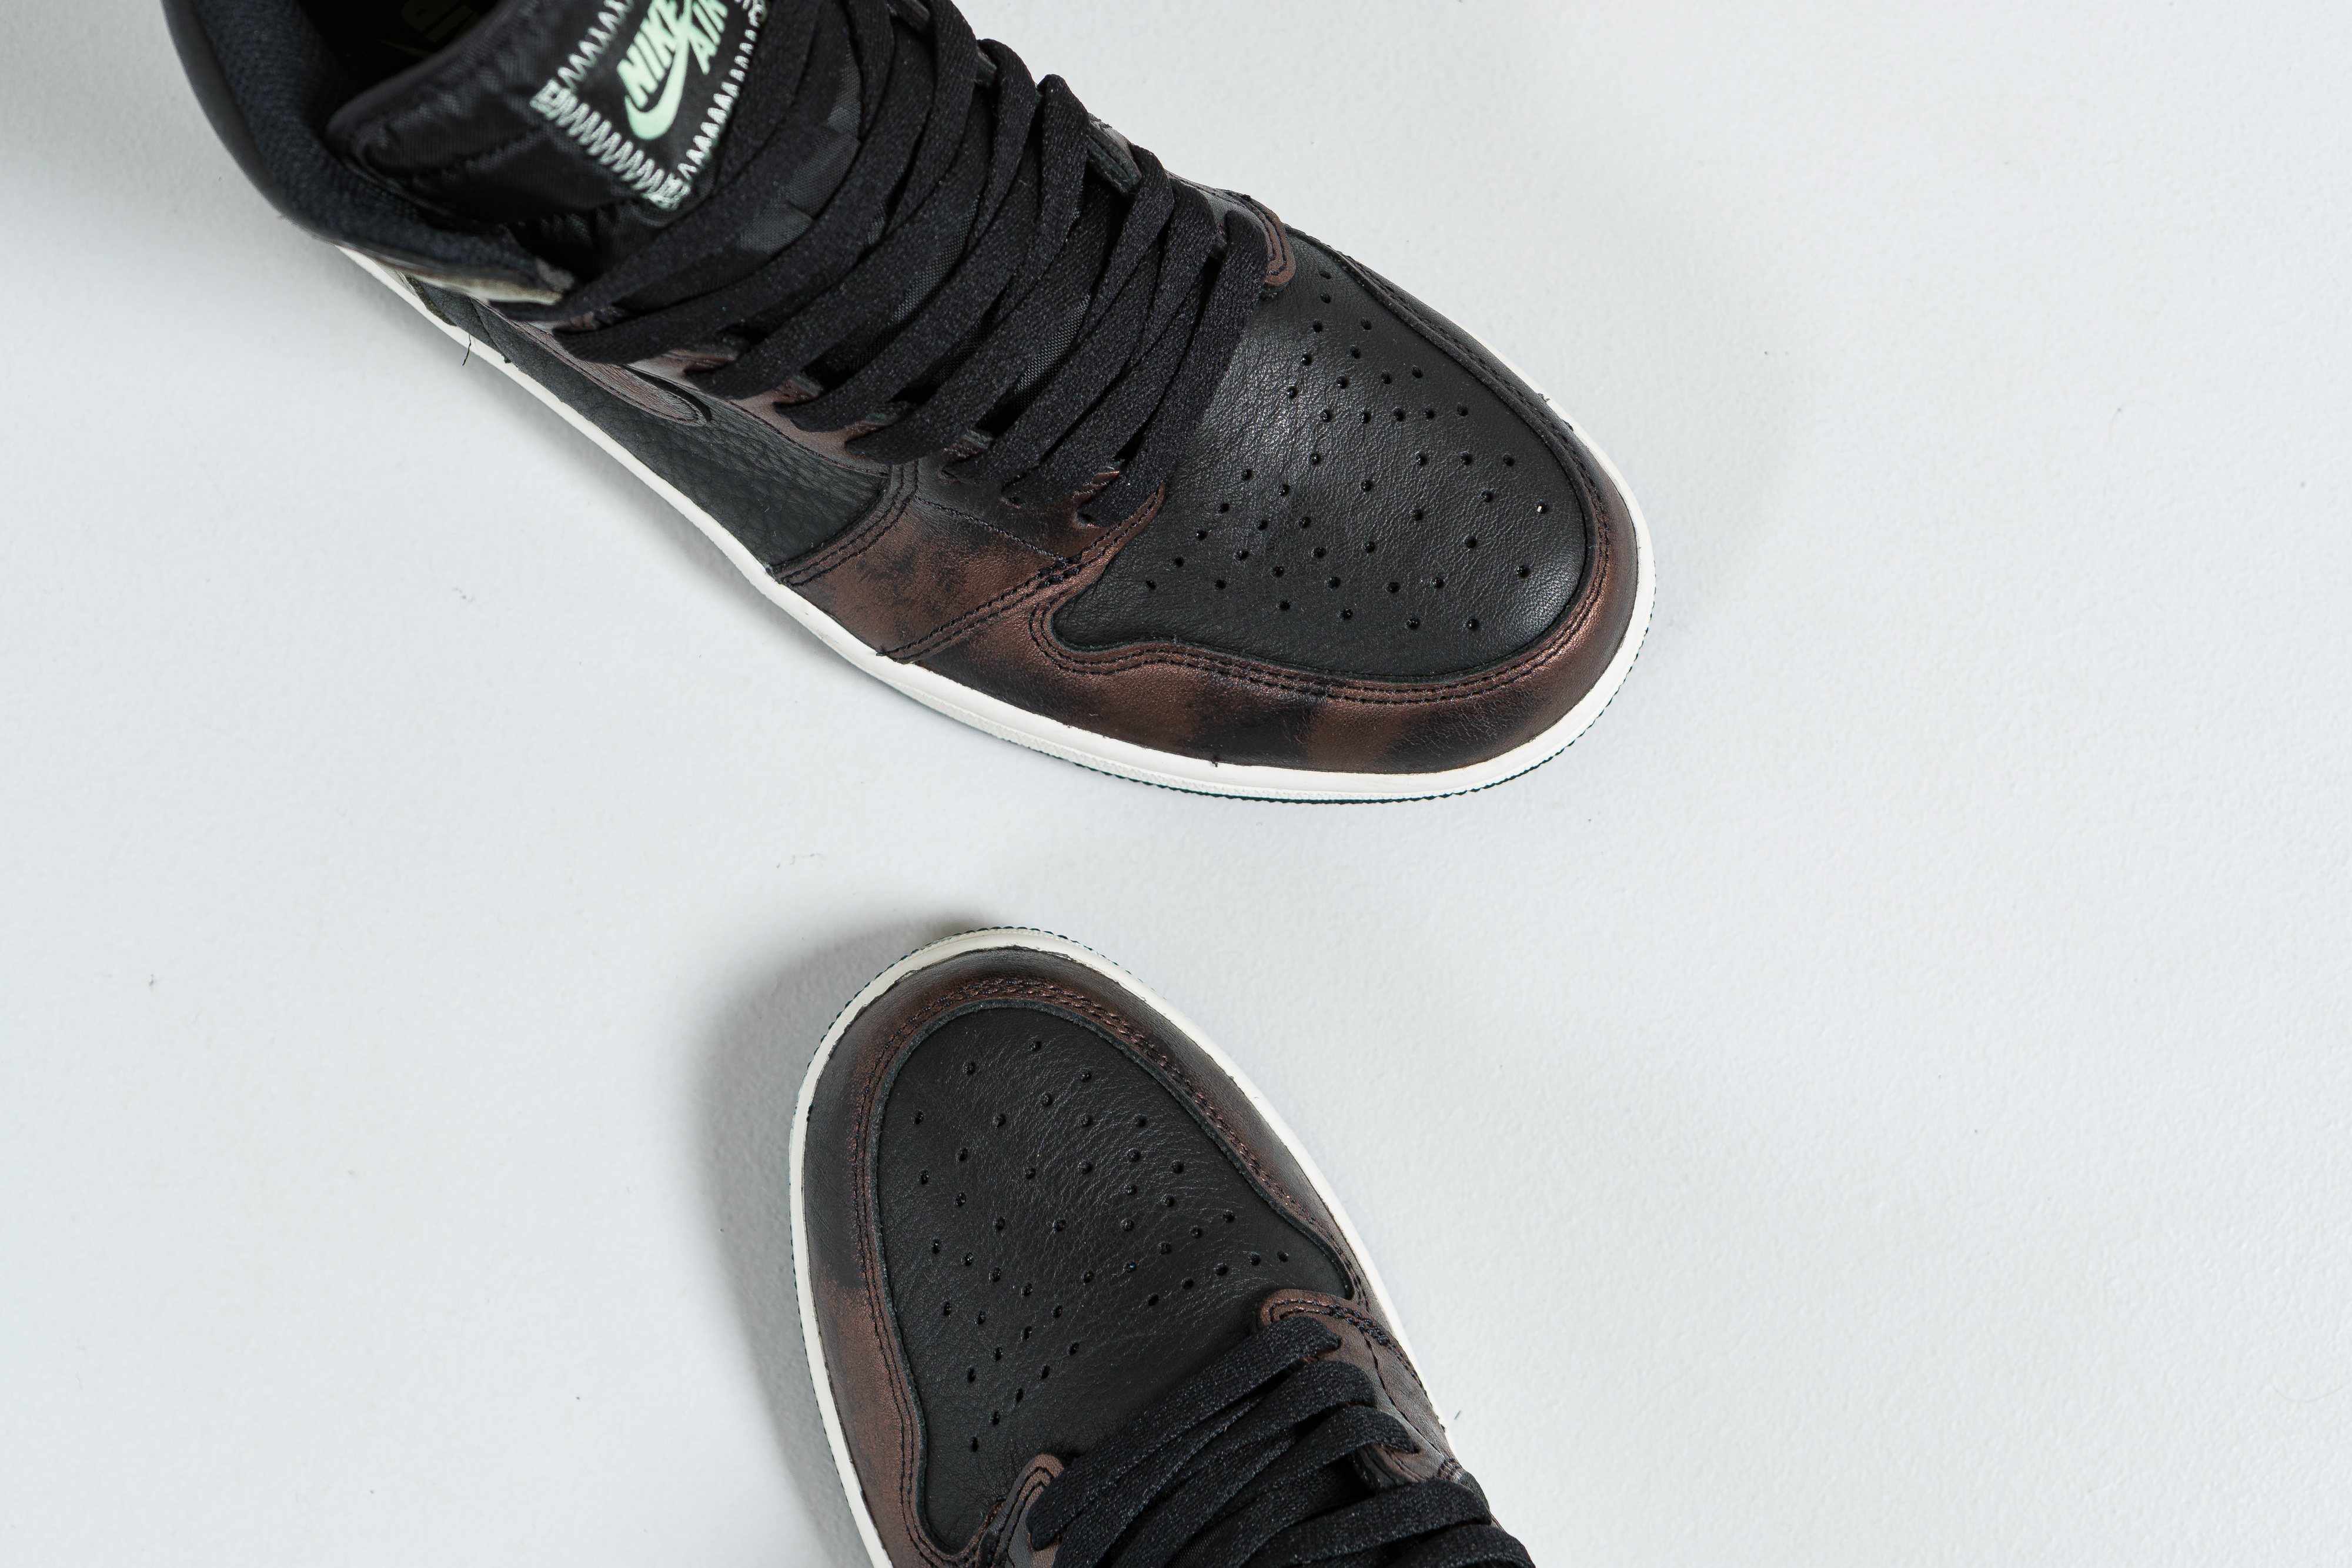 Up There Launches - Nike Air Jordan 1 Retro High OG - 'Patina'